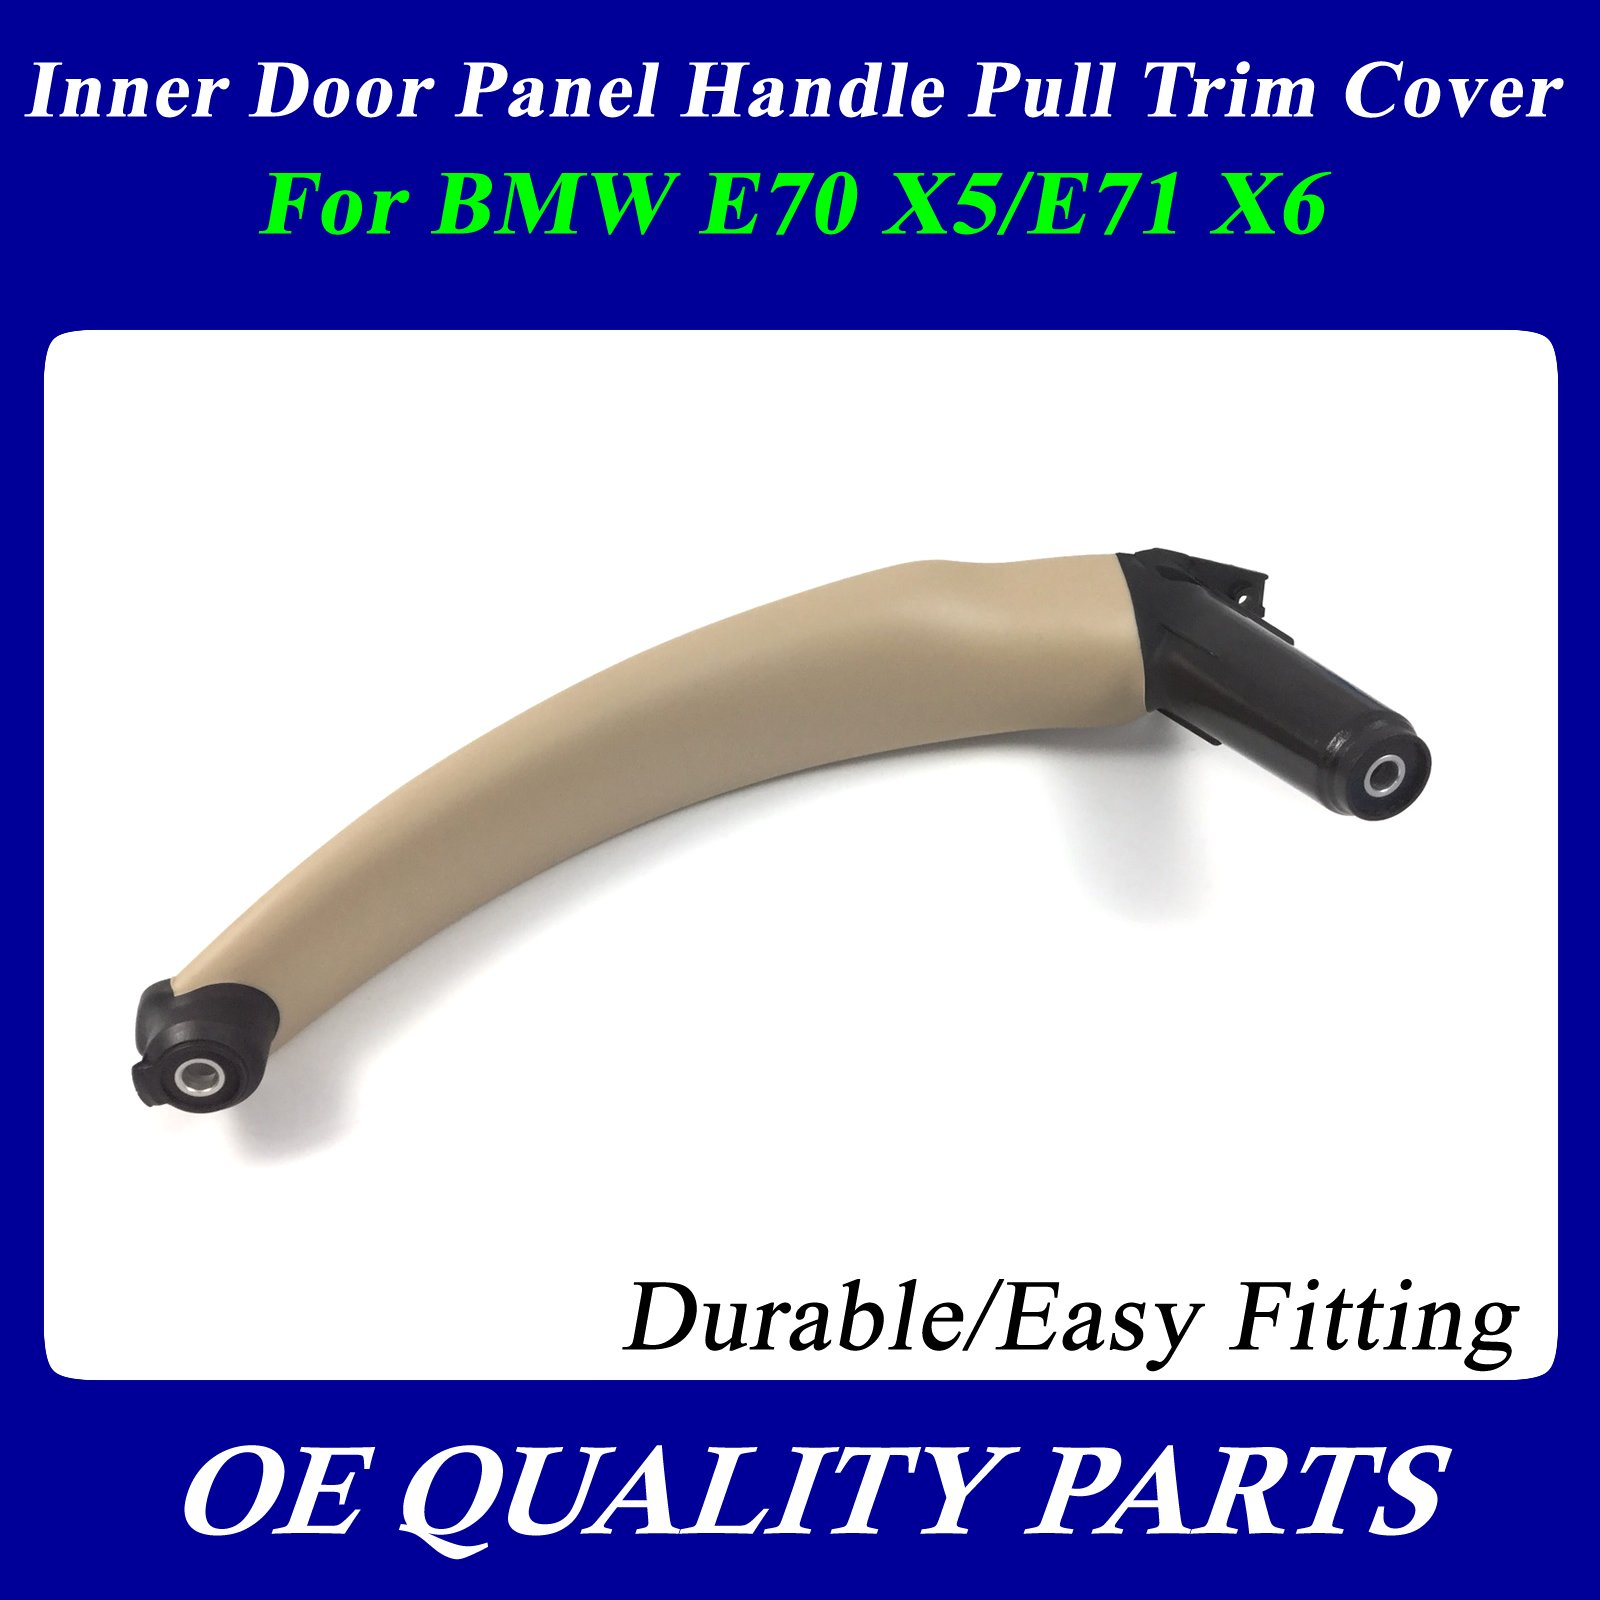 Right Inner Door Panel Handle Pull Trim Cover For BMW E70 X5 E71 X6 51416969404